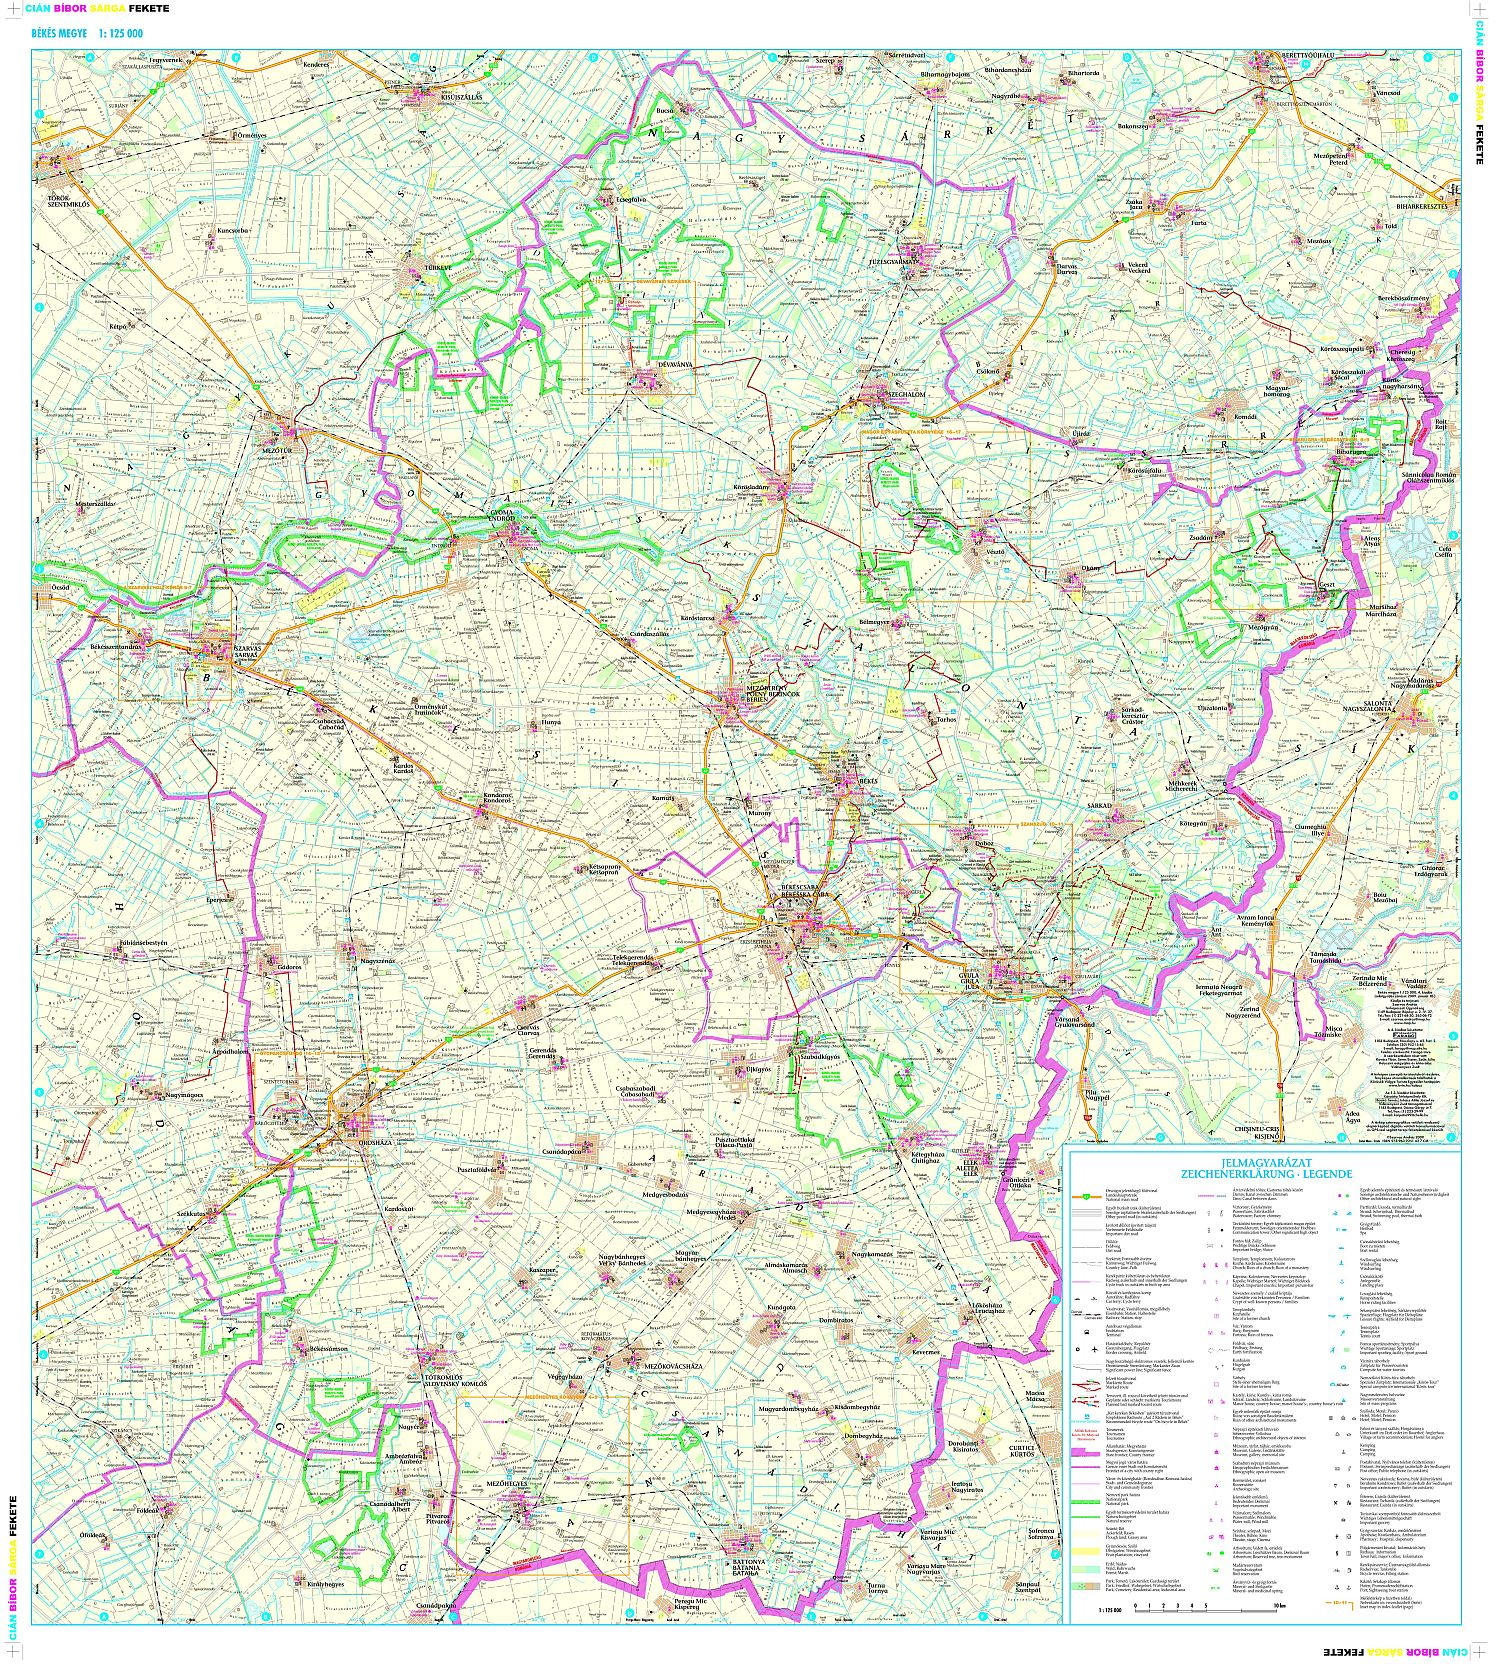 Digital map for mobile phones, tablets can be purchased on PDFMaps website